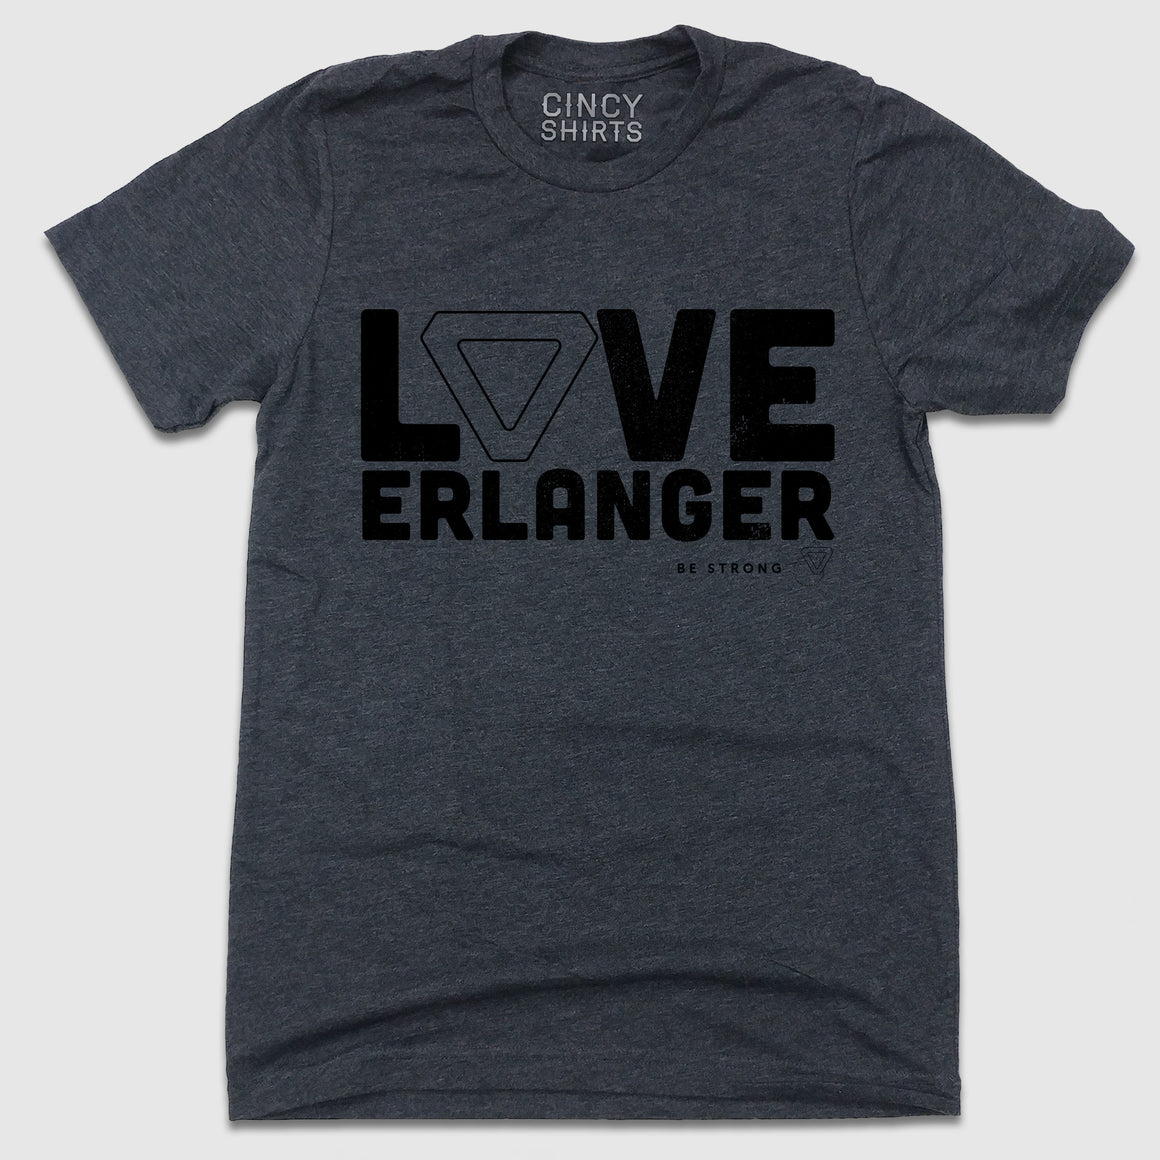 Love Erlanger - Be Strong